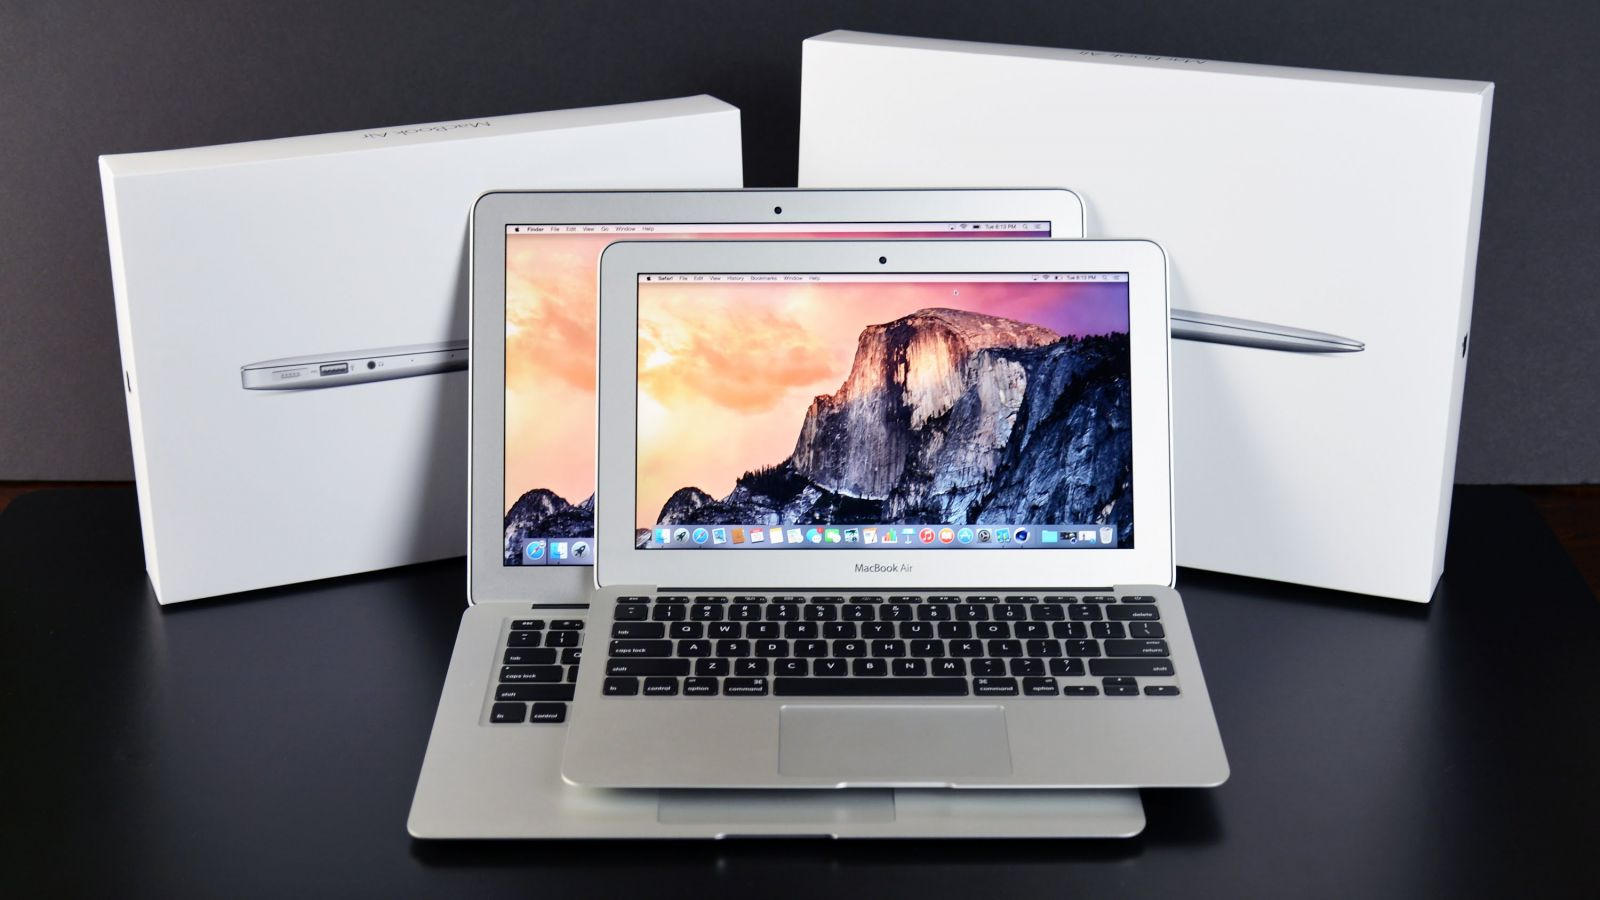 macbook air 11 6 inch mjvm2 core i5 hinh anh 2